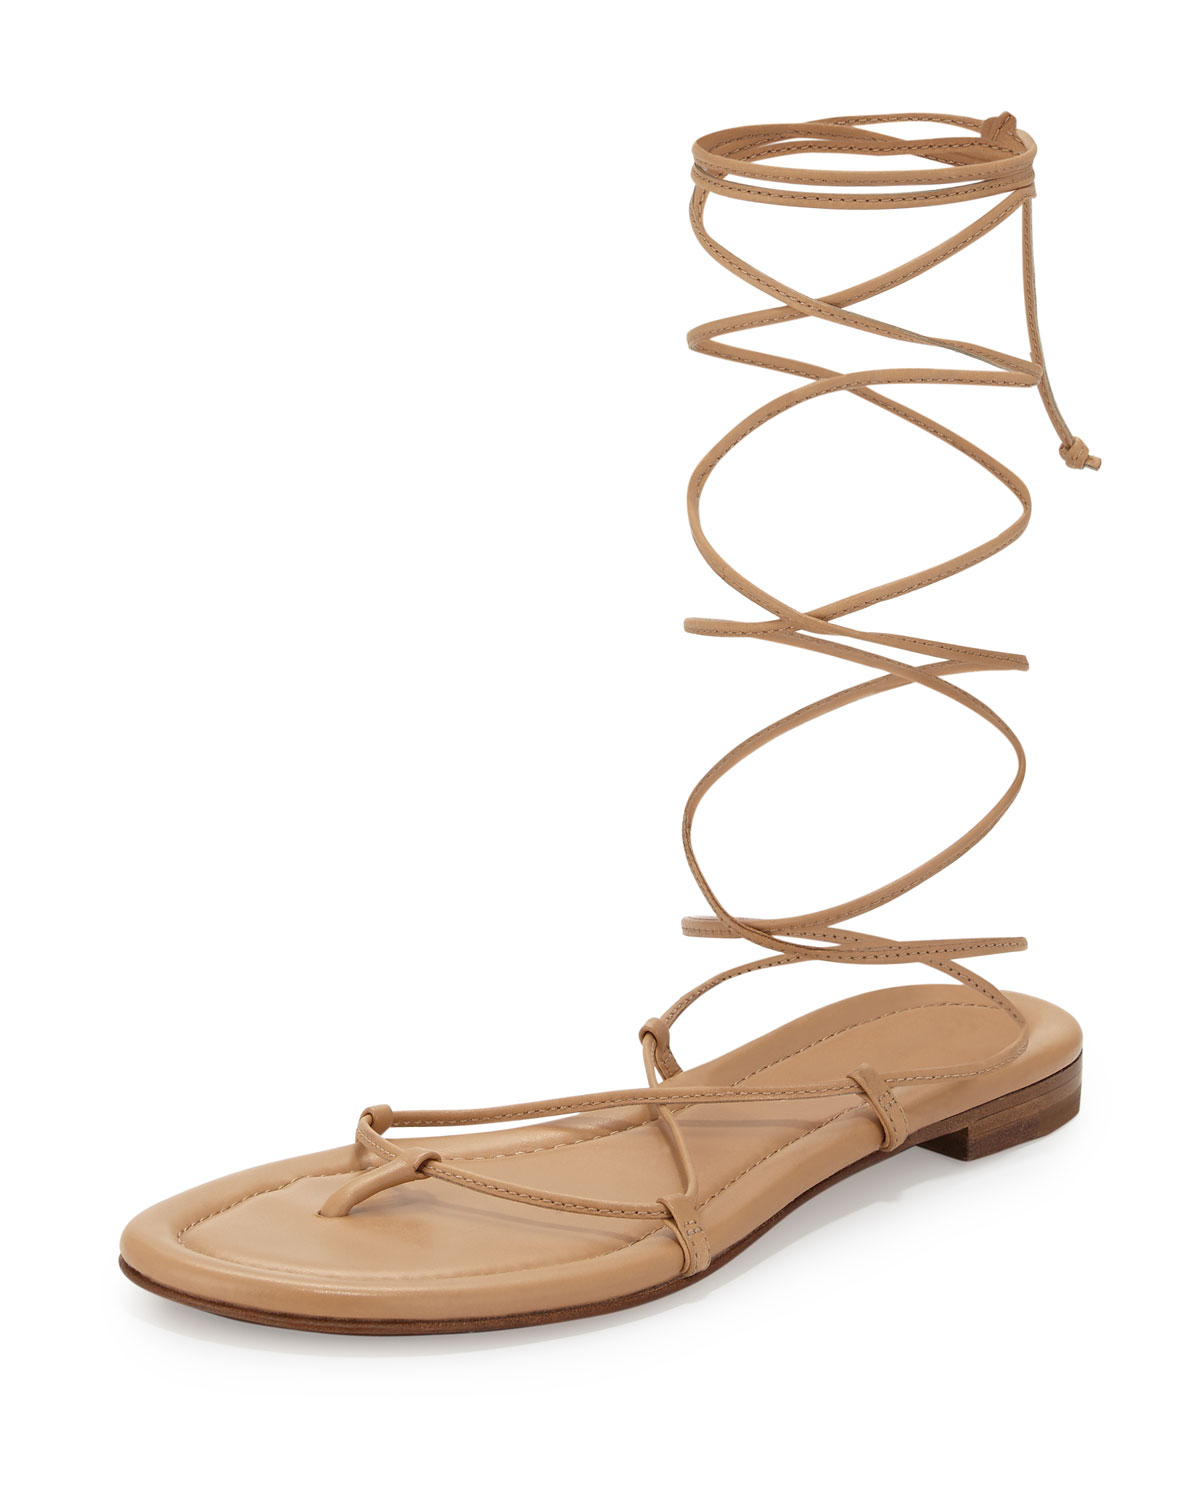 Bradshaw Lace-Up Gladiator Sandal, Toffee